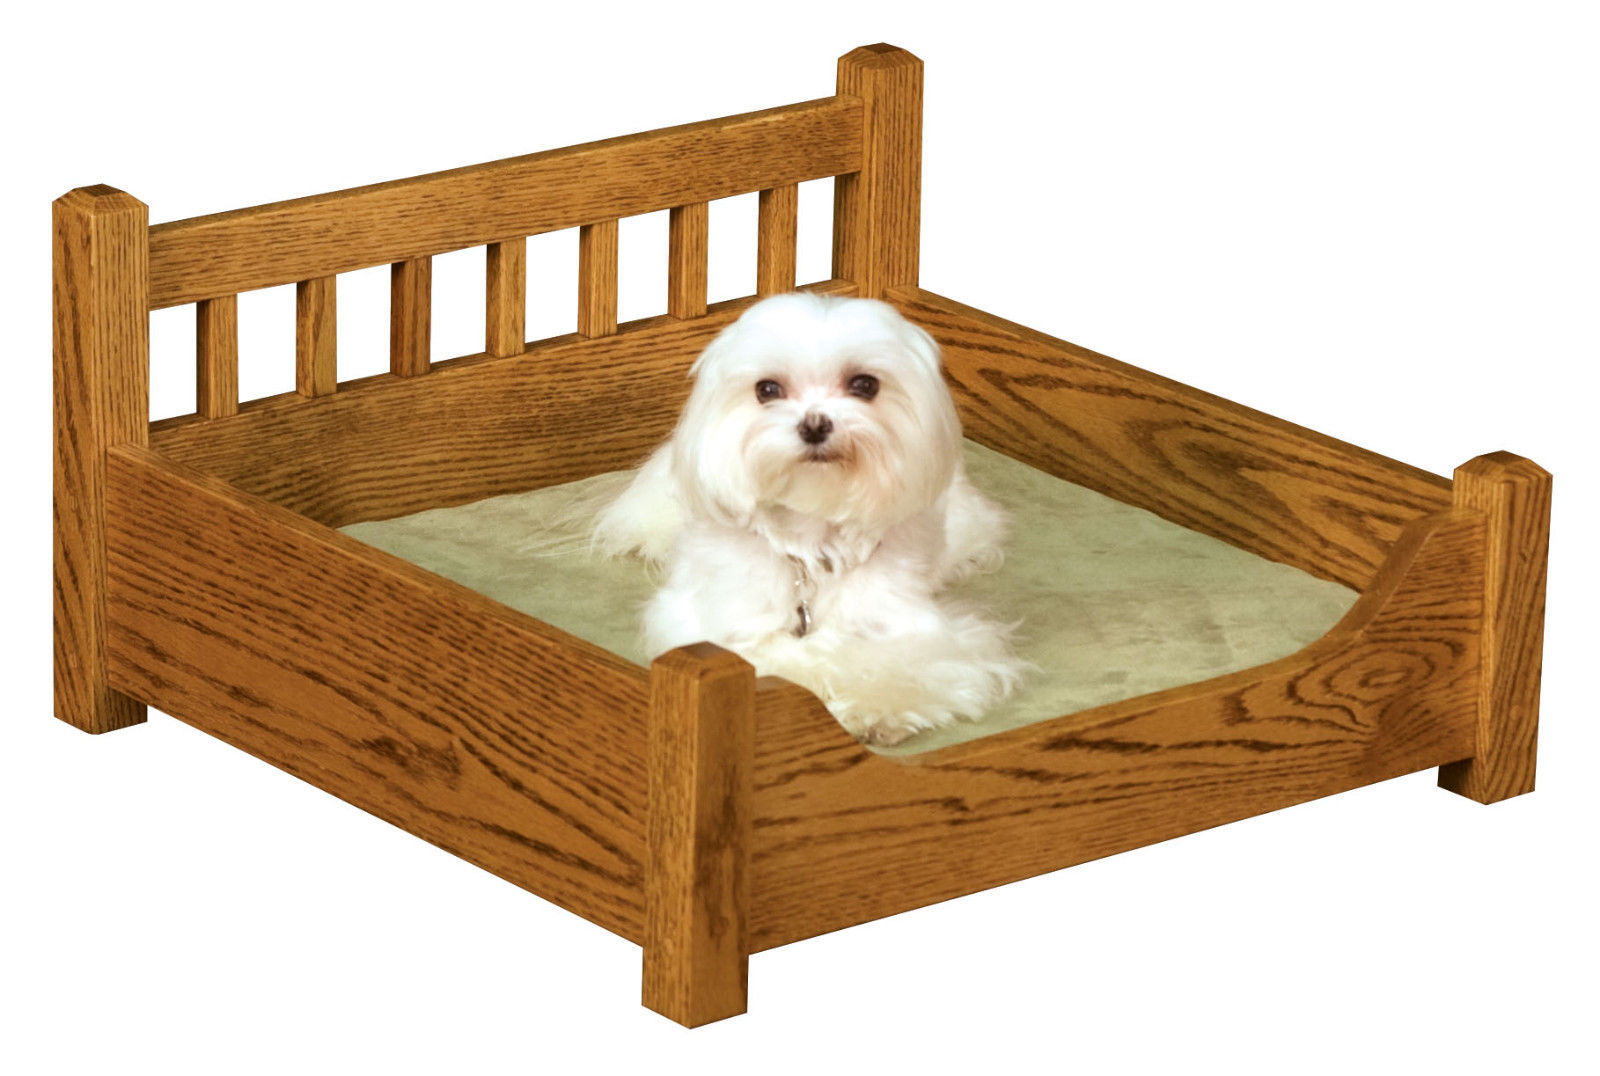 Luxury wood pet bed solid oak dog or cat royal furniture for Wood dog bed furniture